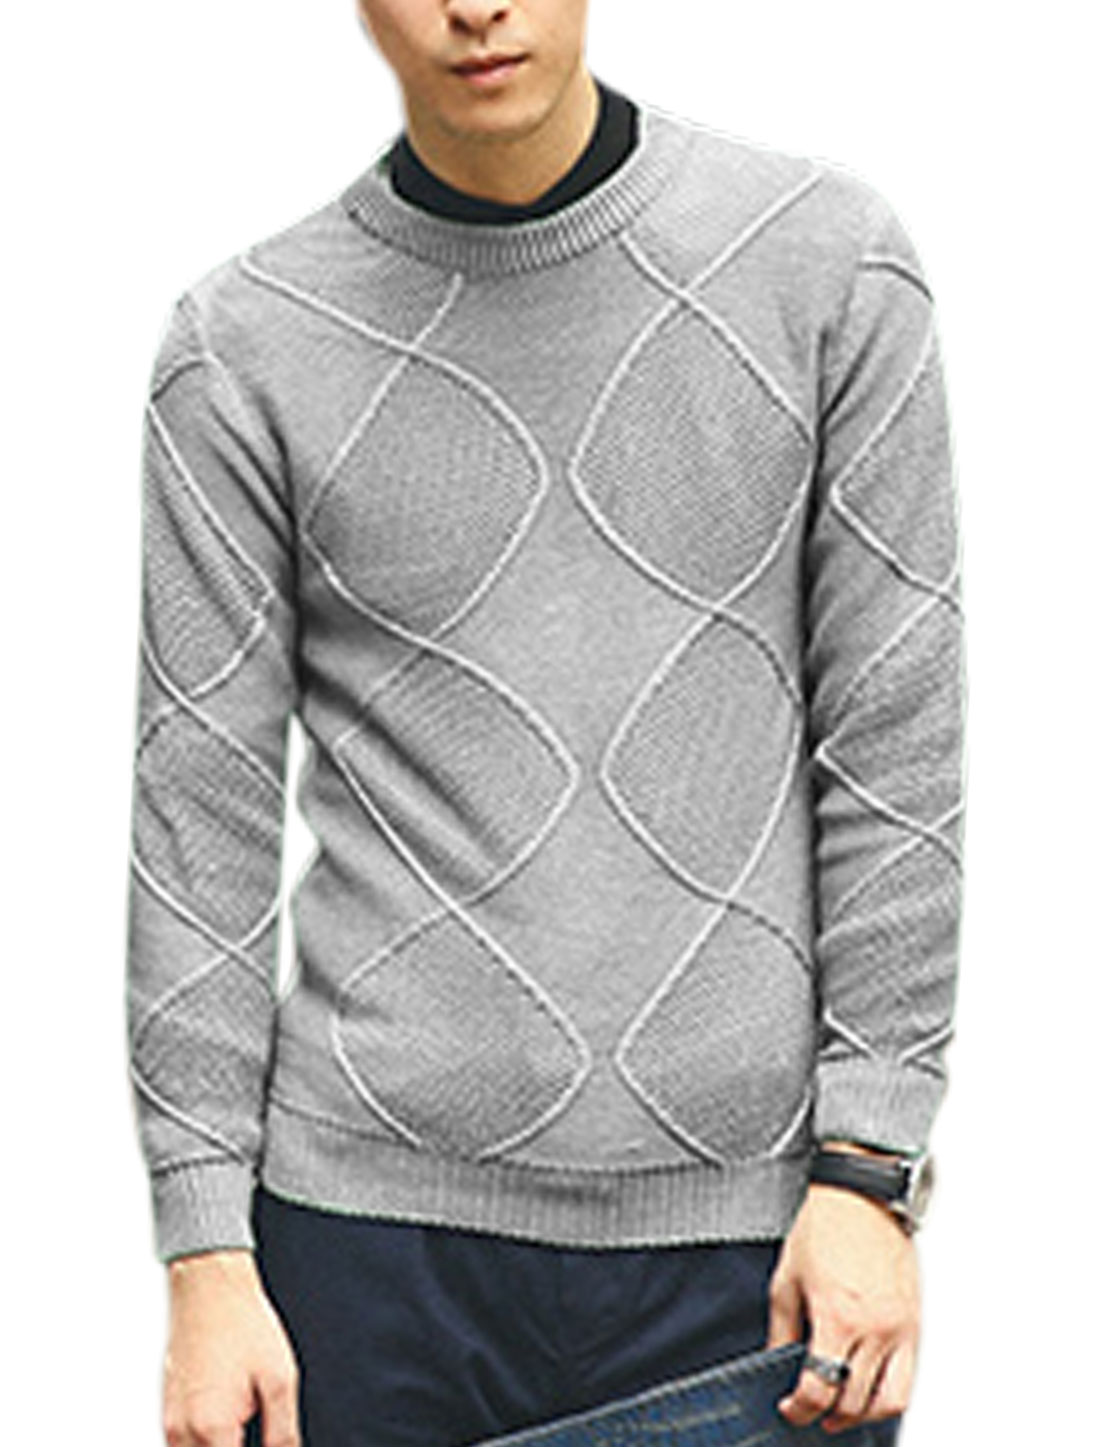 Men Crew Neck Argyle Design Ribbed Cuffs See Through Casual Sweater Light Gray M